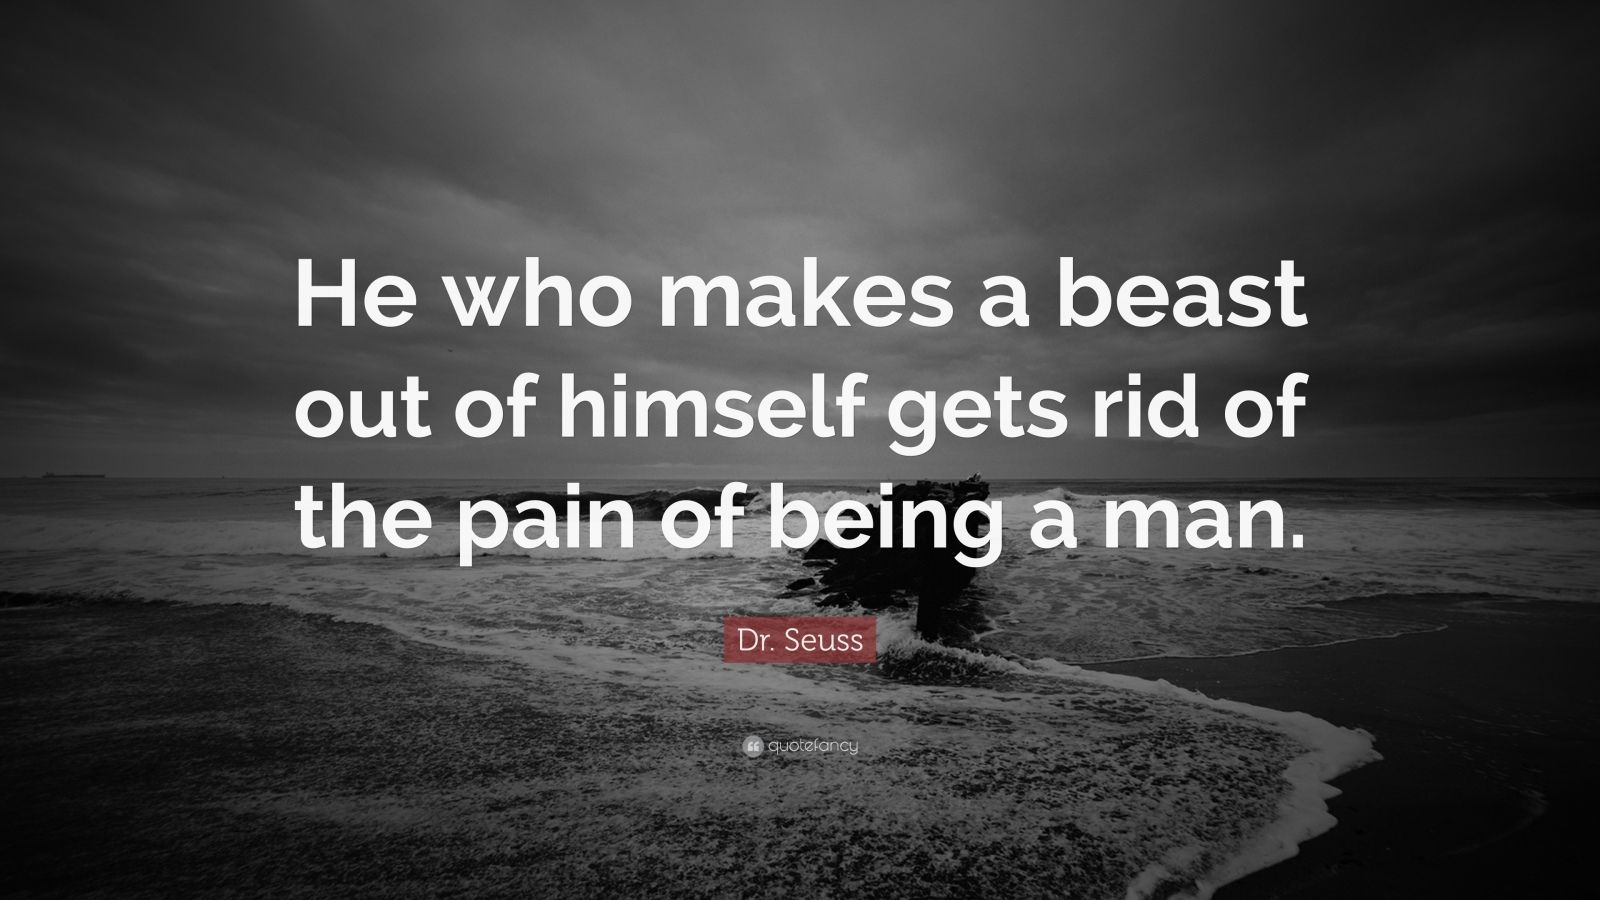 New Quotes Wallpaper Dr Seuss Quote He Who Makes A Beast Out Of Himself Gets